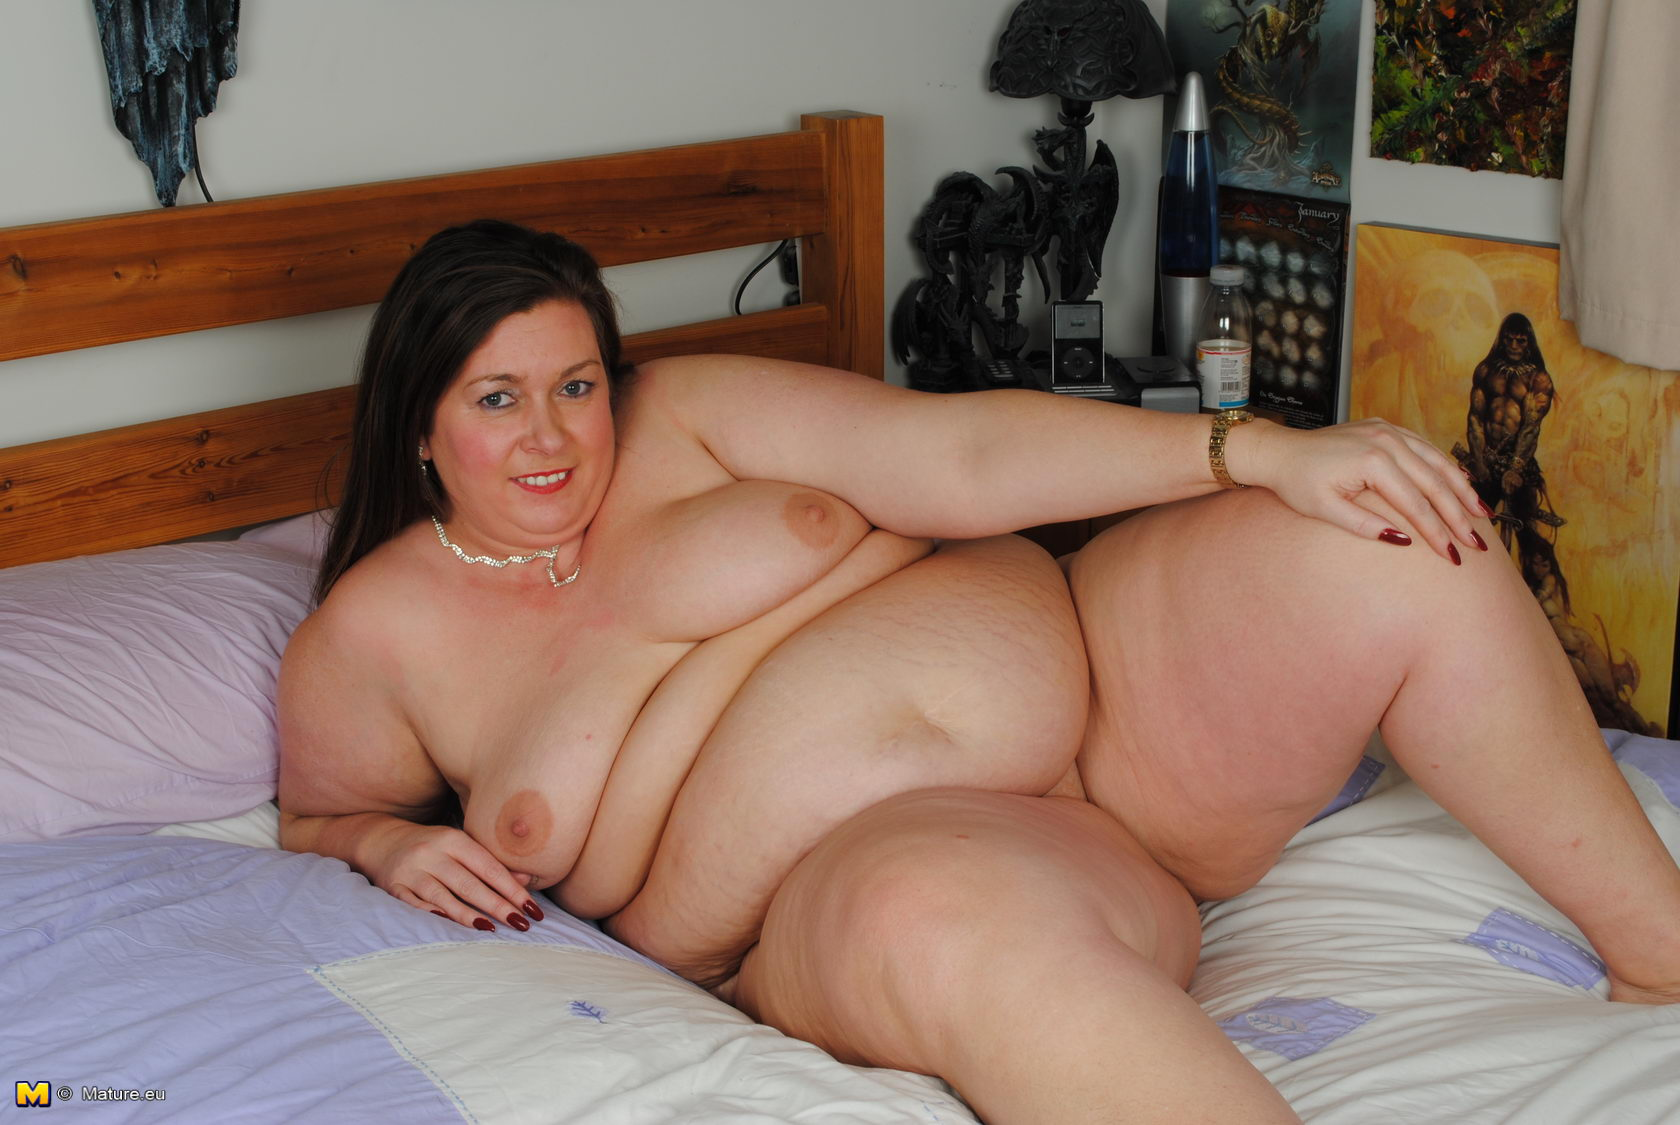 Porn pictures Sbbw fisting xhamster free porn